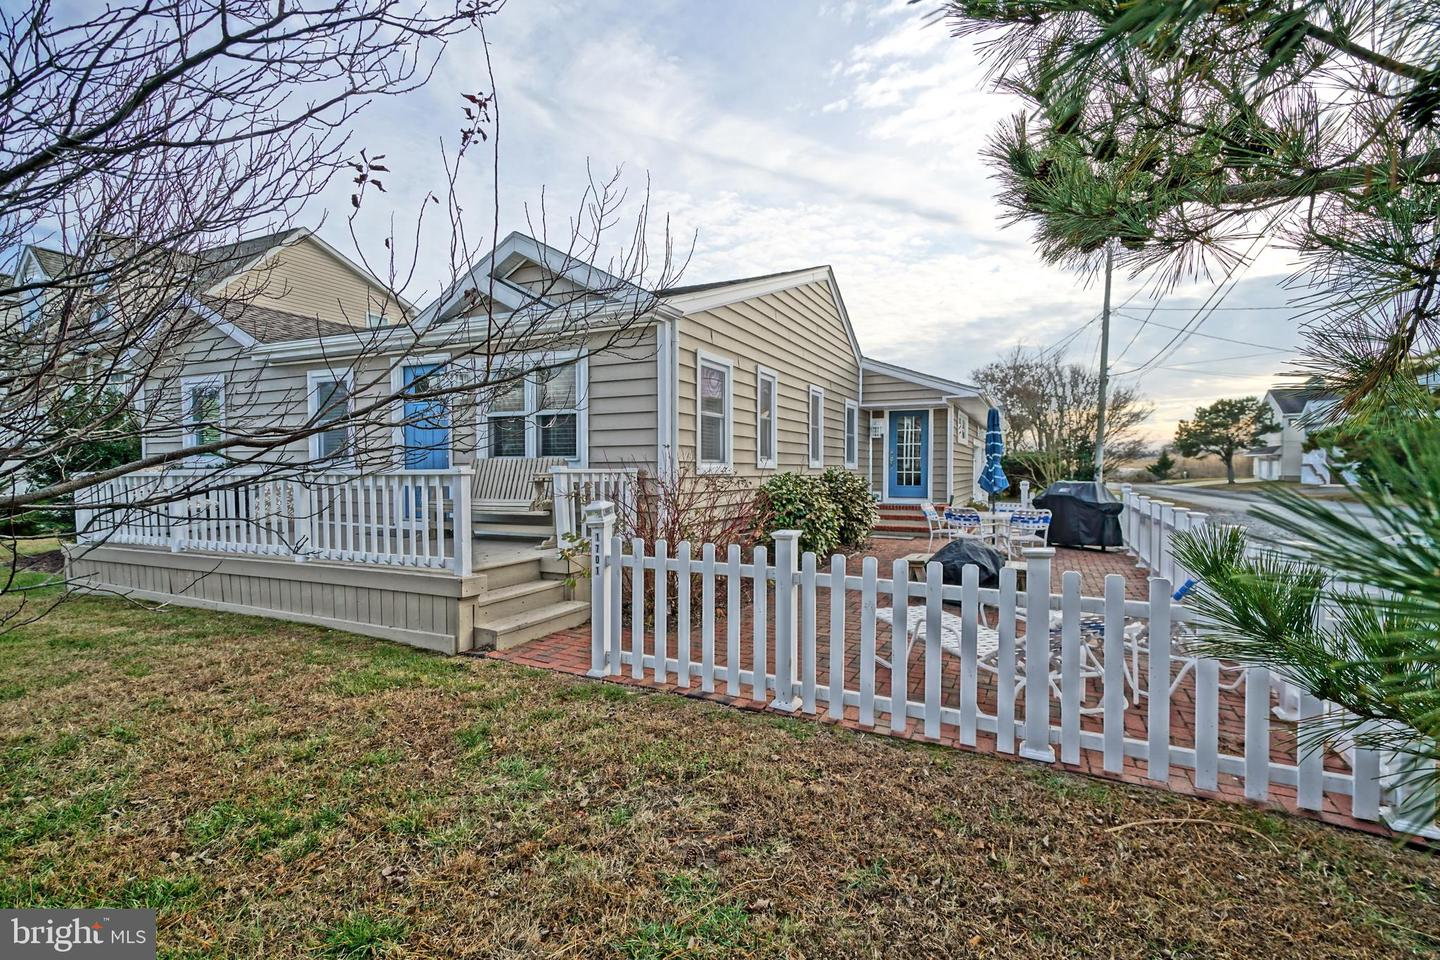 DESU150754-302164450266-2020-03-09-15-33-50 1701 Cedar St | Lewes, DE Real Estate For Sale | MLS# Desu150754  - Lee Ann Group